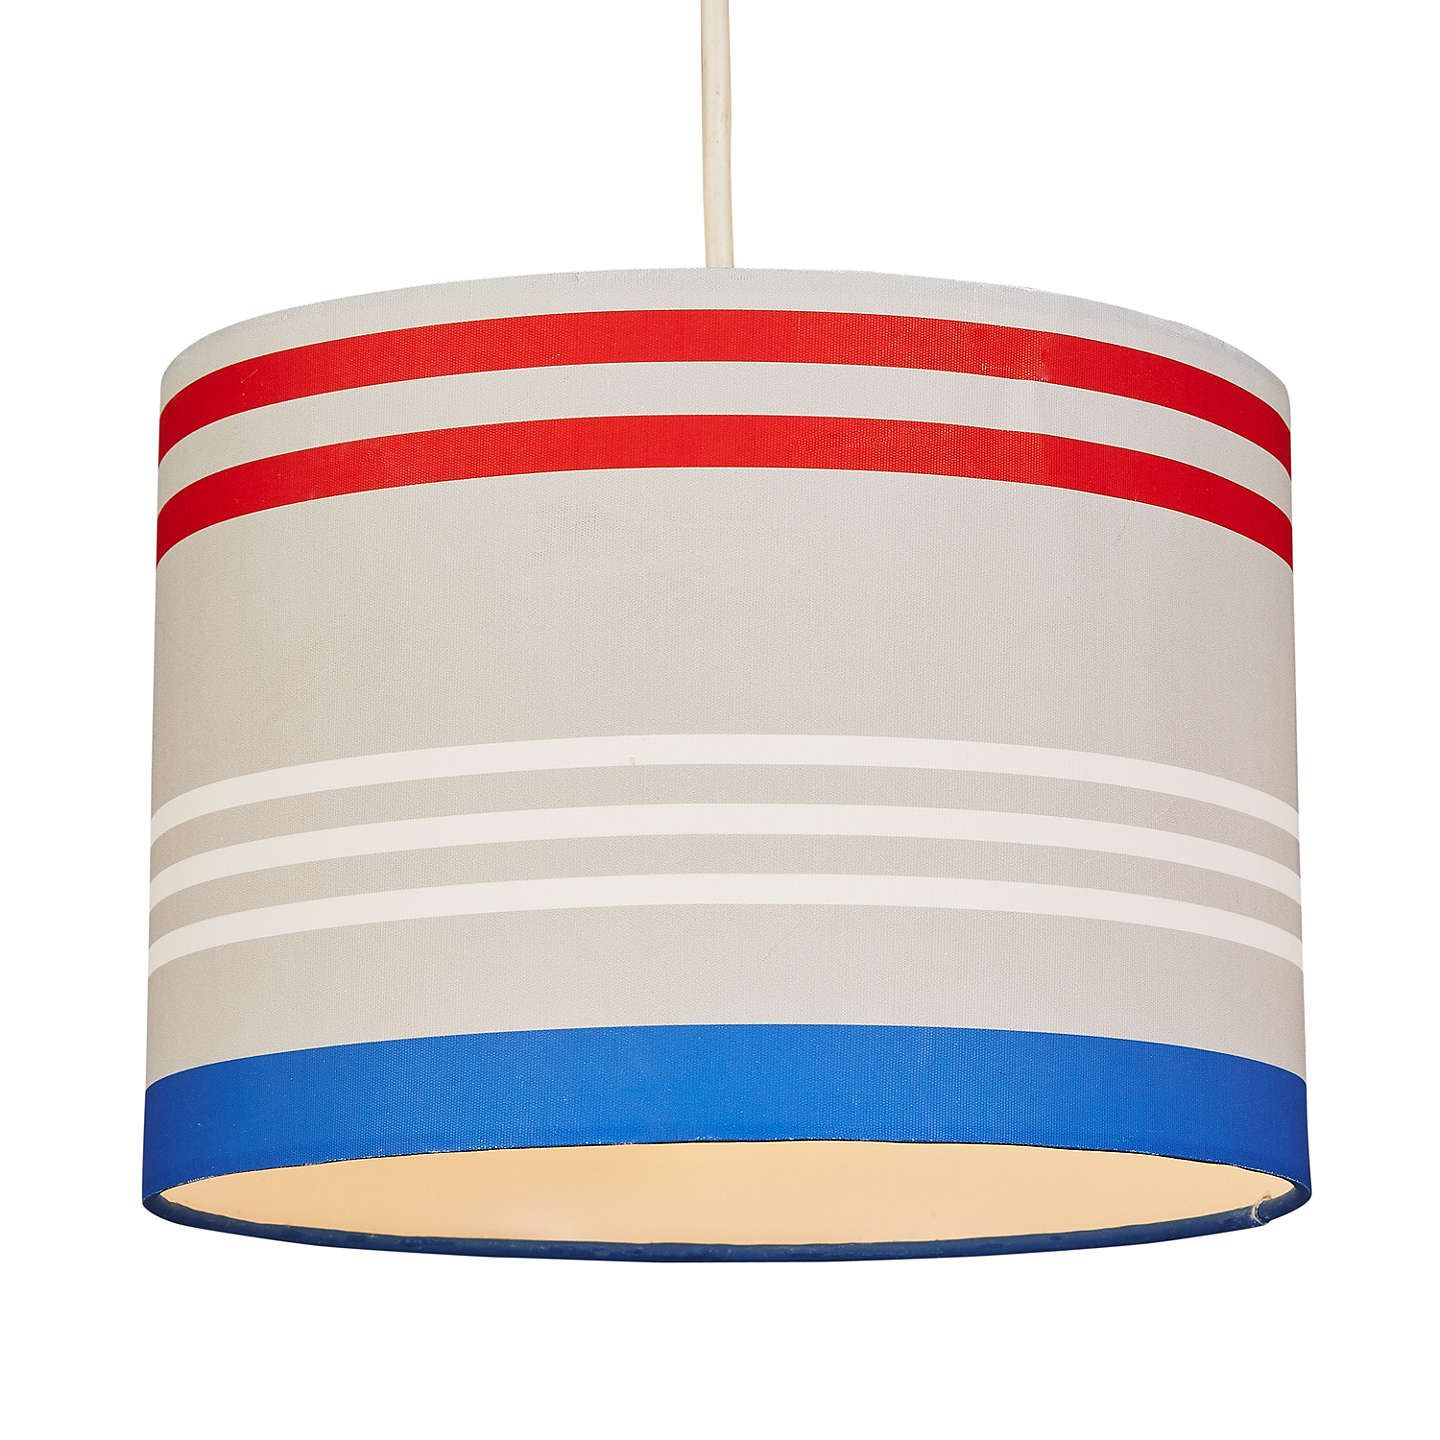 Buylittle Home At John Lewis Noisy Harbour Lampshade